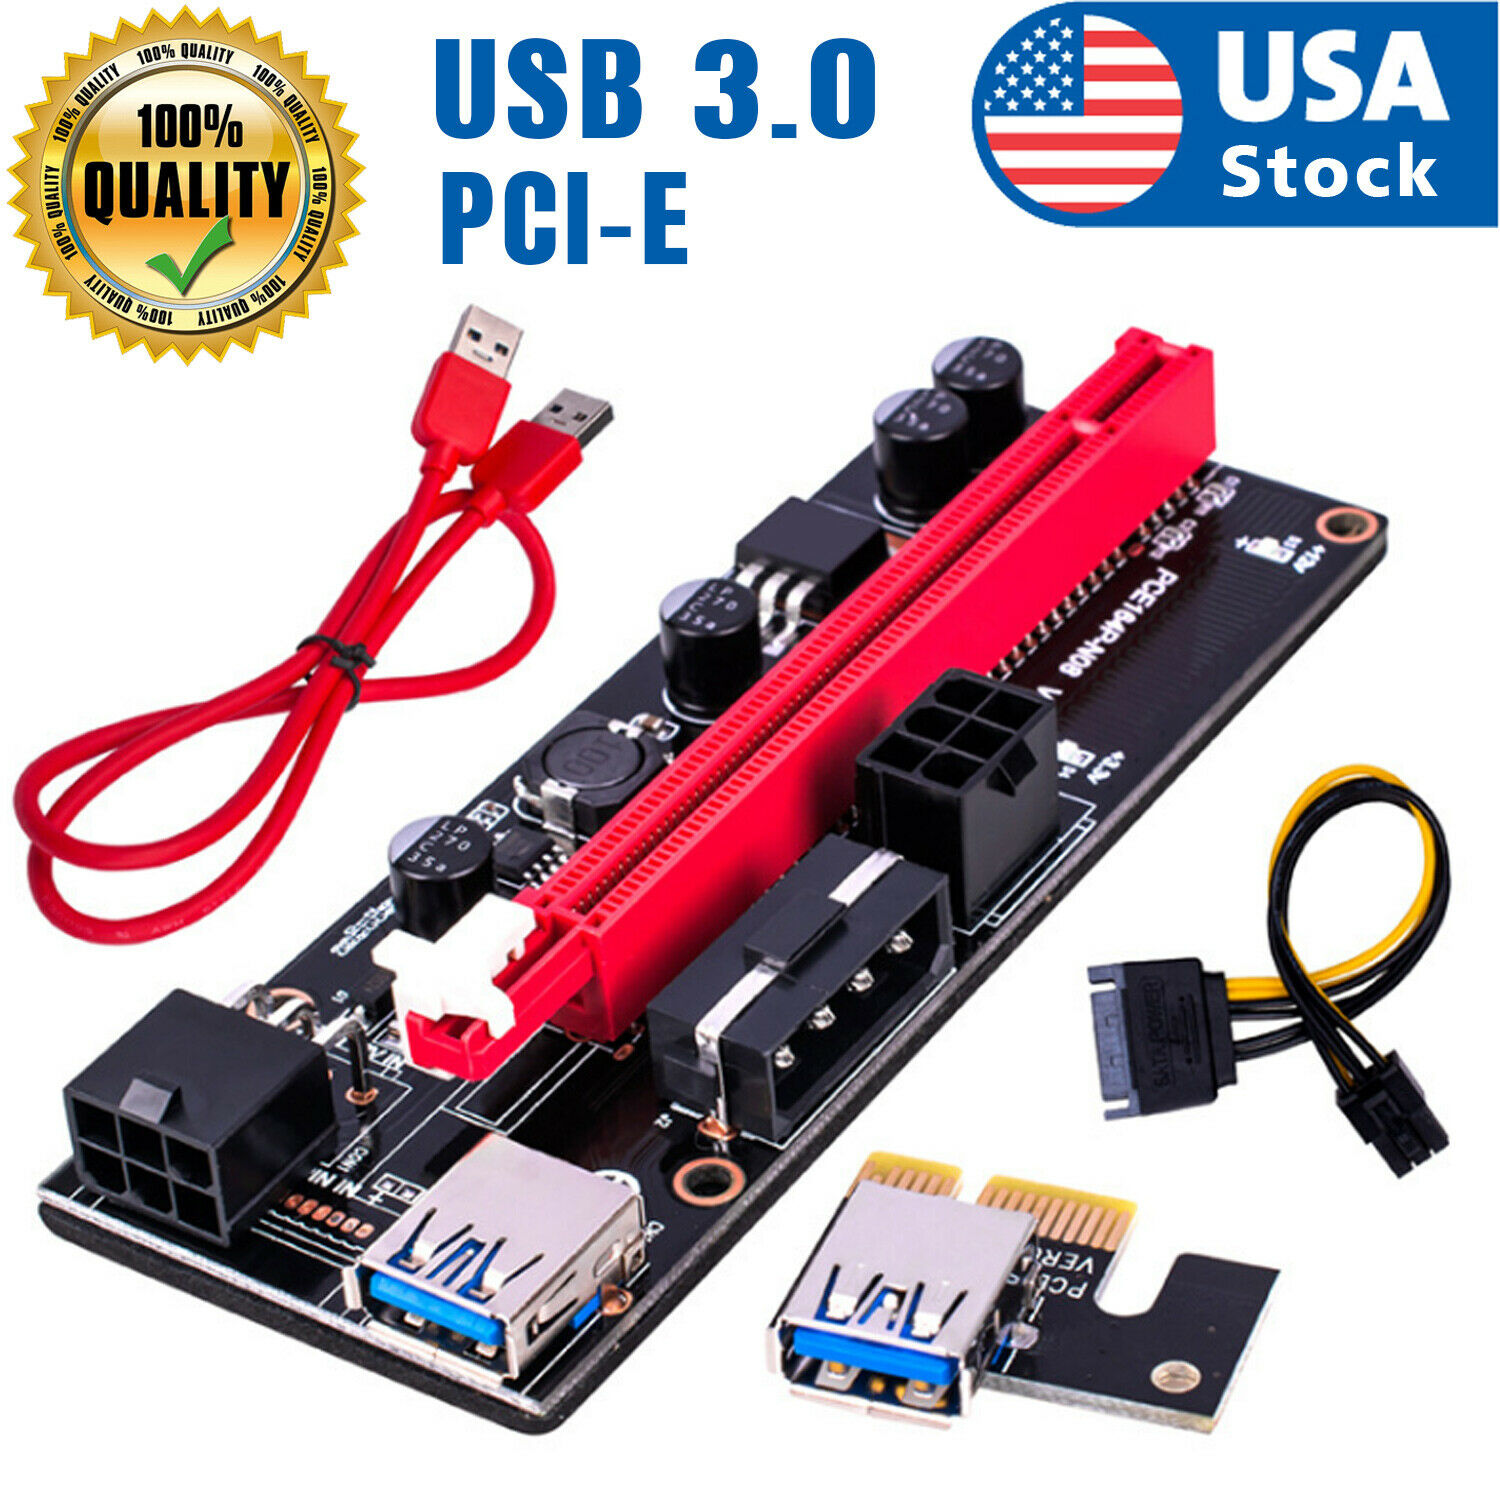 Ethereum PCI-E 1x to 16x Powered USB3.0 GPU Riser Extender Adapter Card VER 009s Computer Cables & Connectors